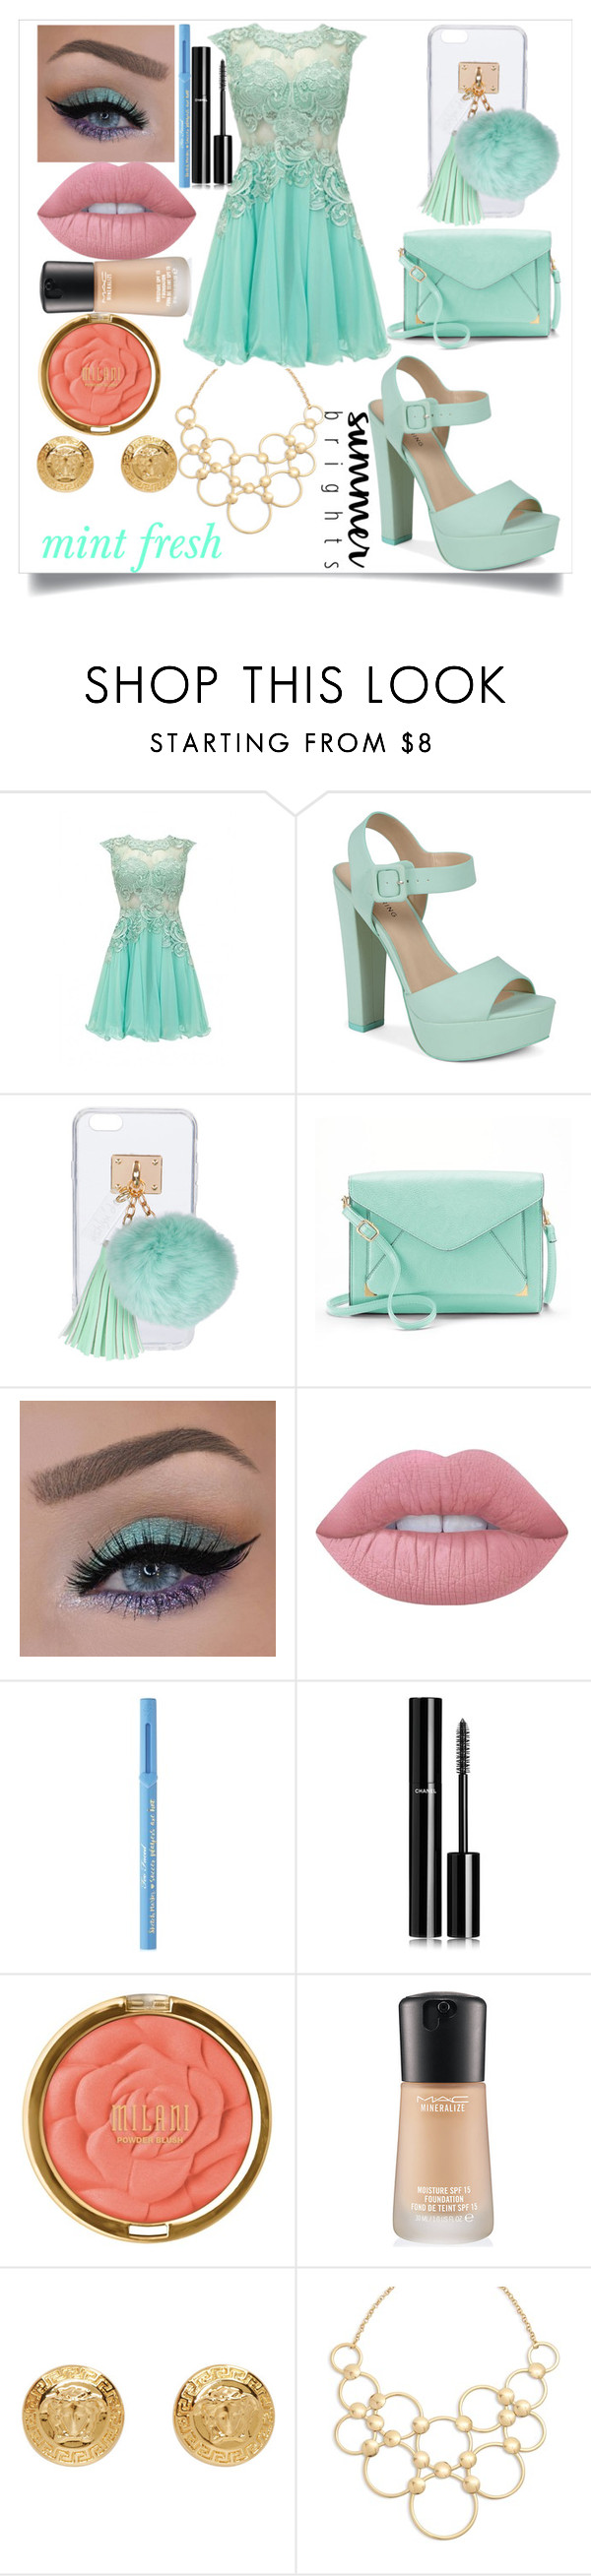 """""""minty fresh"""" by whitewood ❤ liked on Polyvore featuring Call it SPRING, Ashlyn'd, Apt. 9, Lime Crime, Too Faced Cosmetics, Chanel, Milani, MAC Cosmetics, Versace and Vera Bradley"""